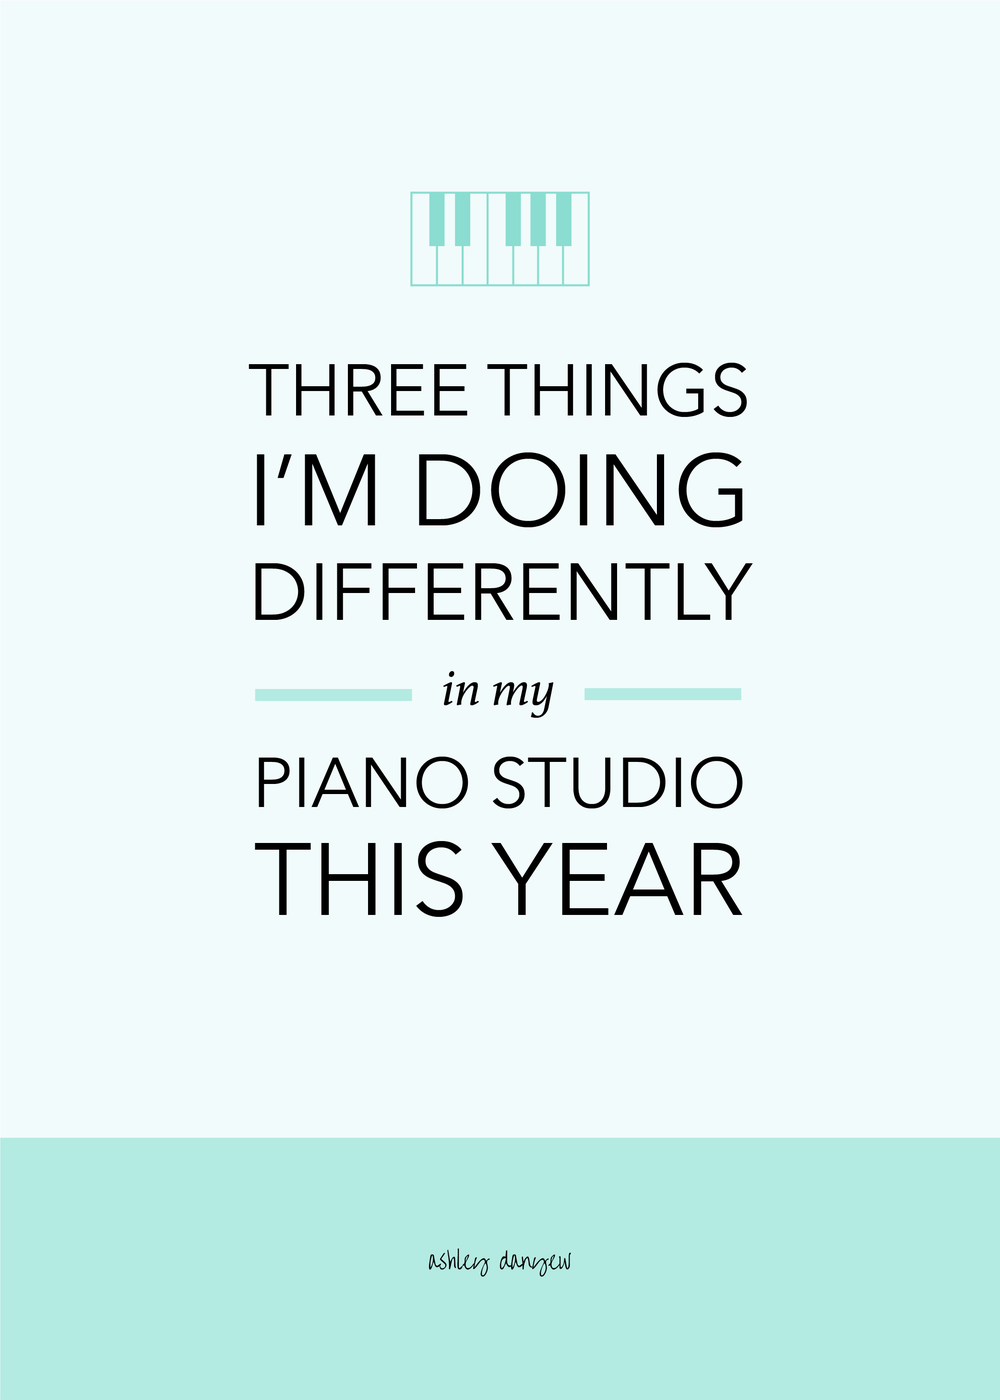 Three Things I'm Doing Differently in My Piano Studio This Year